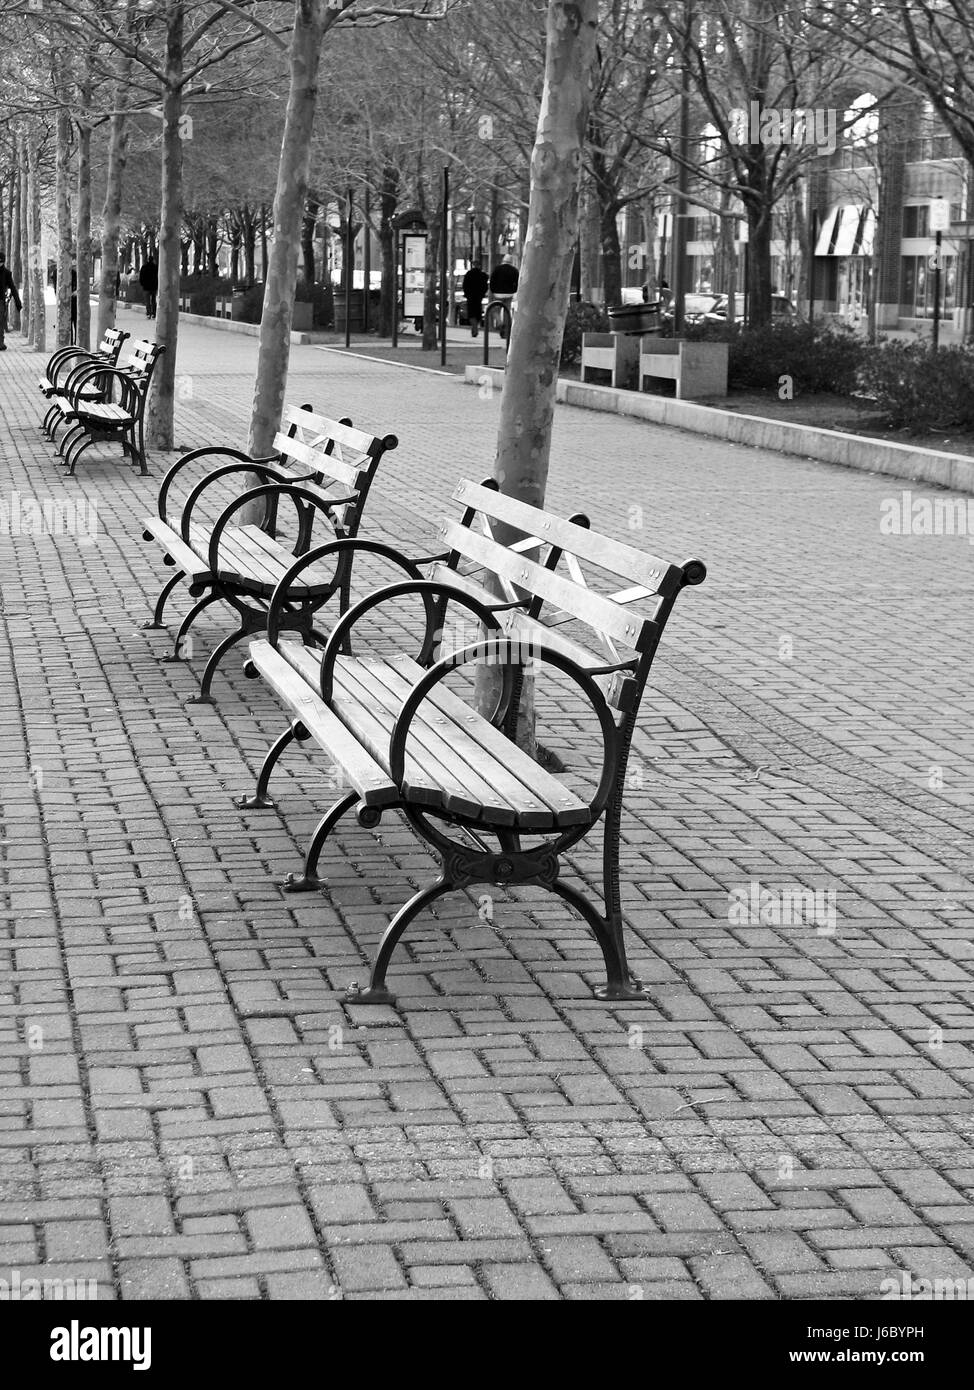 bench outside. park benches outside quiet empty seat bench path way outdoor